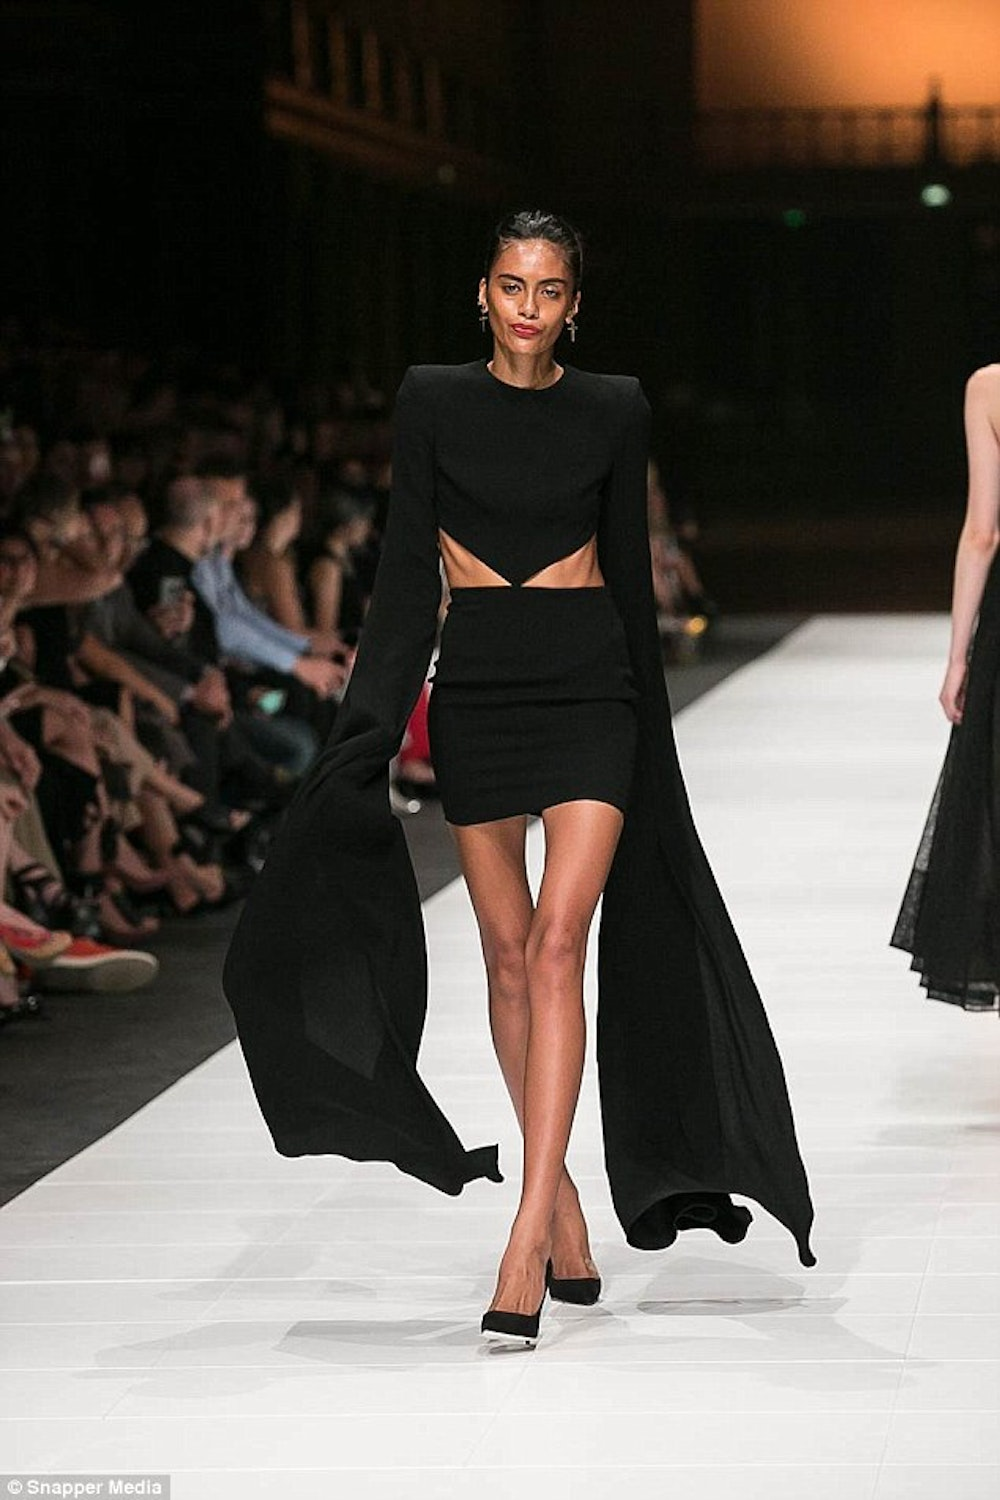 Skeletal Model Holly Moore Walks The Runway In Melbourne In A Black Dress  With Ribs Showing